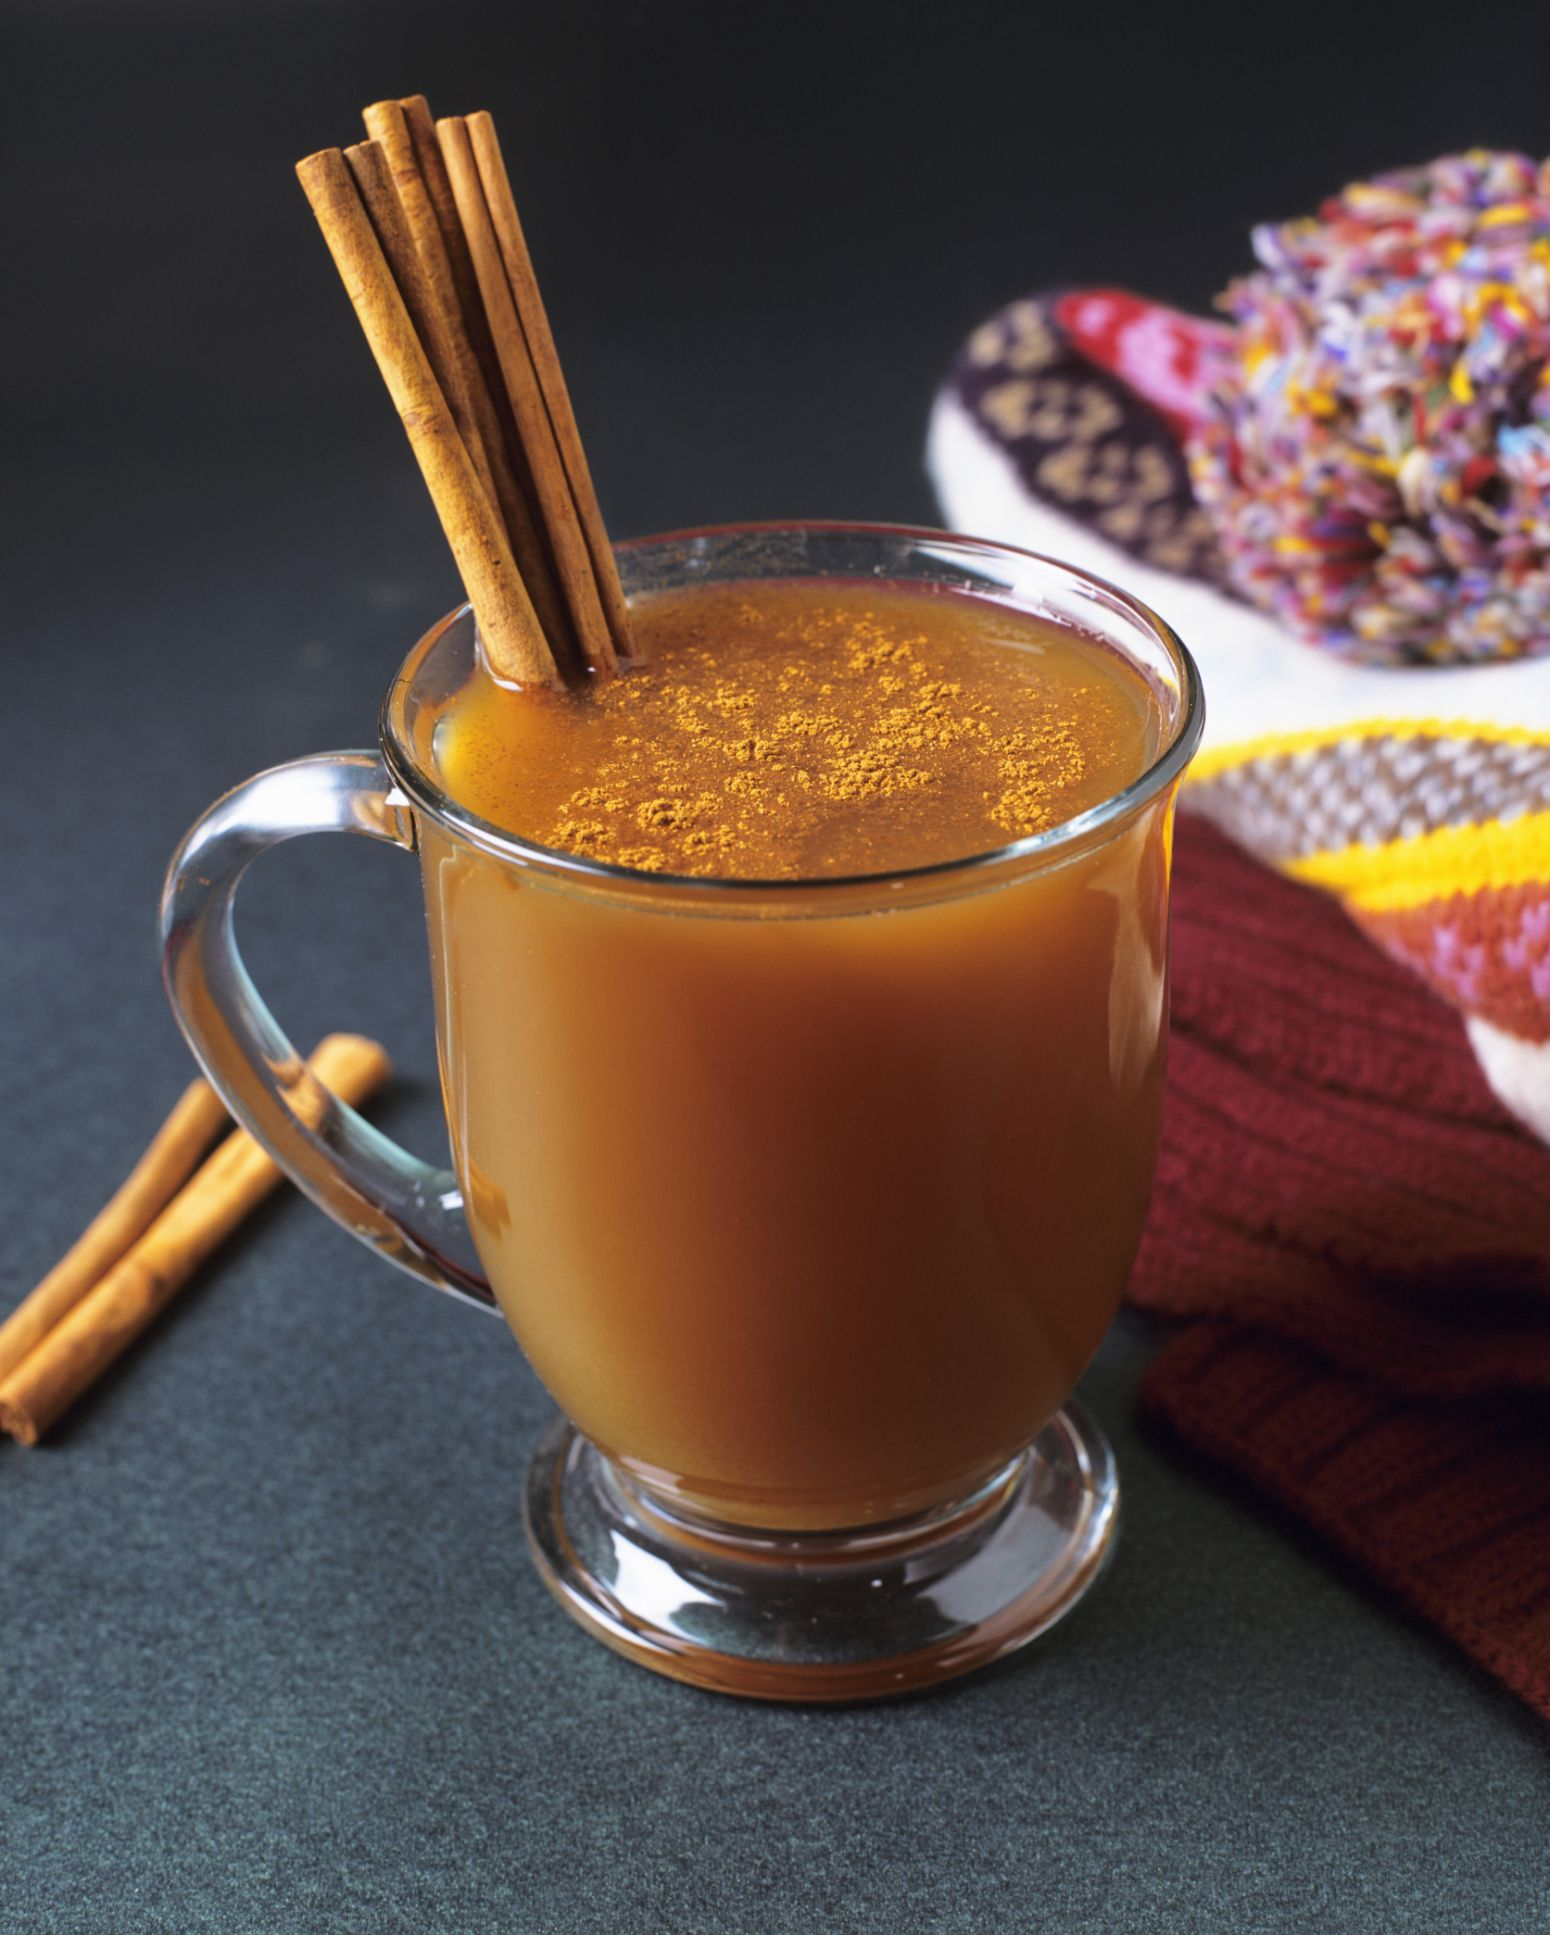 Cheers To Fall-inspired Cocktails That Keep Our Tummies